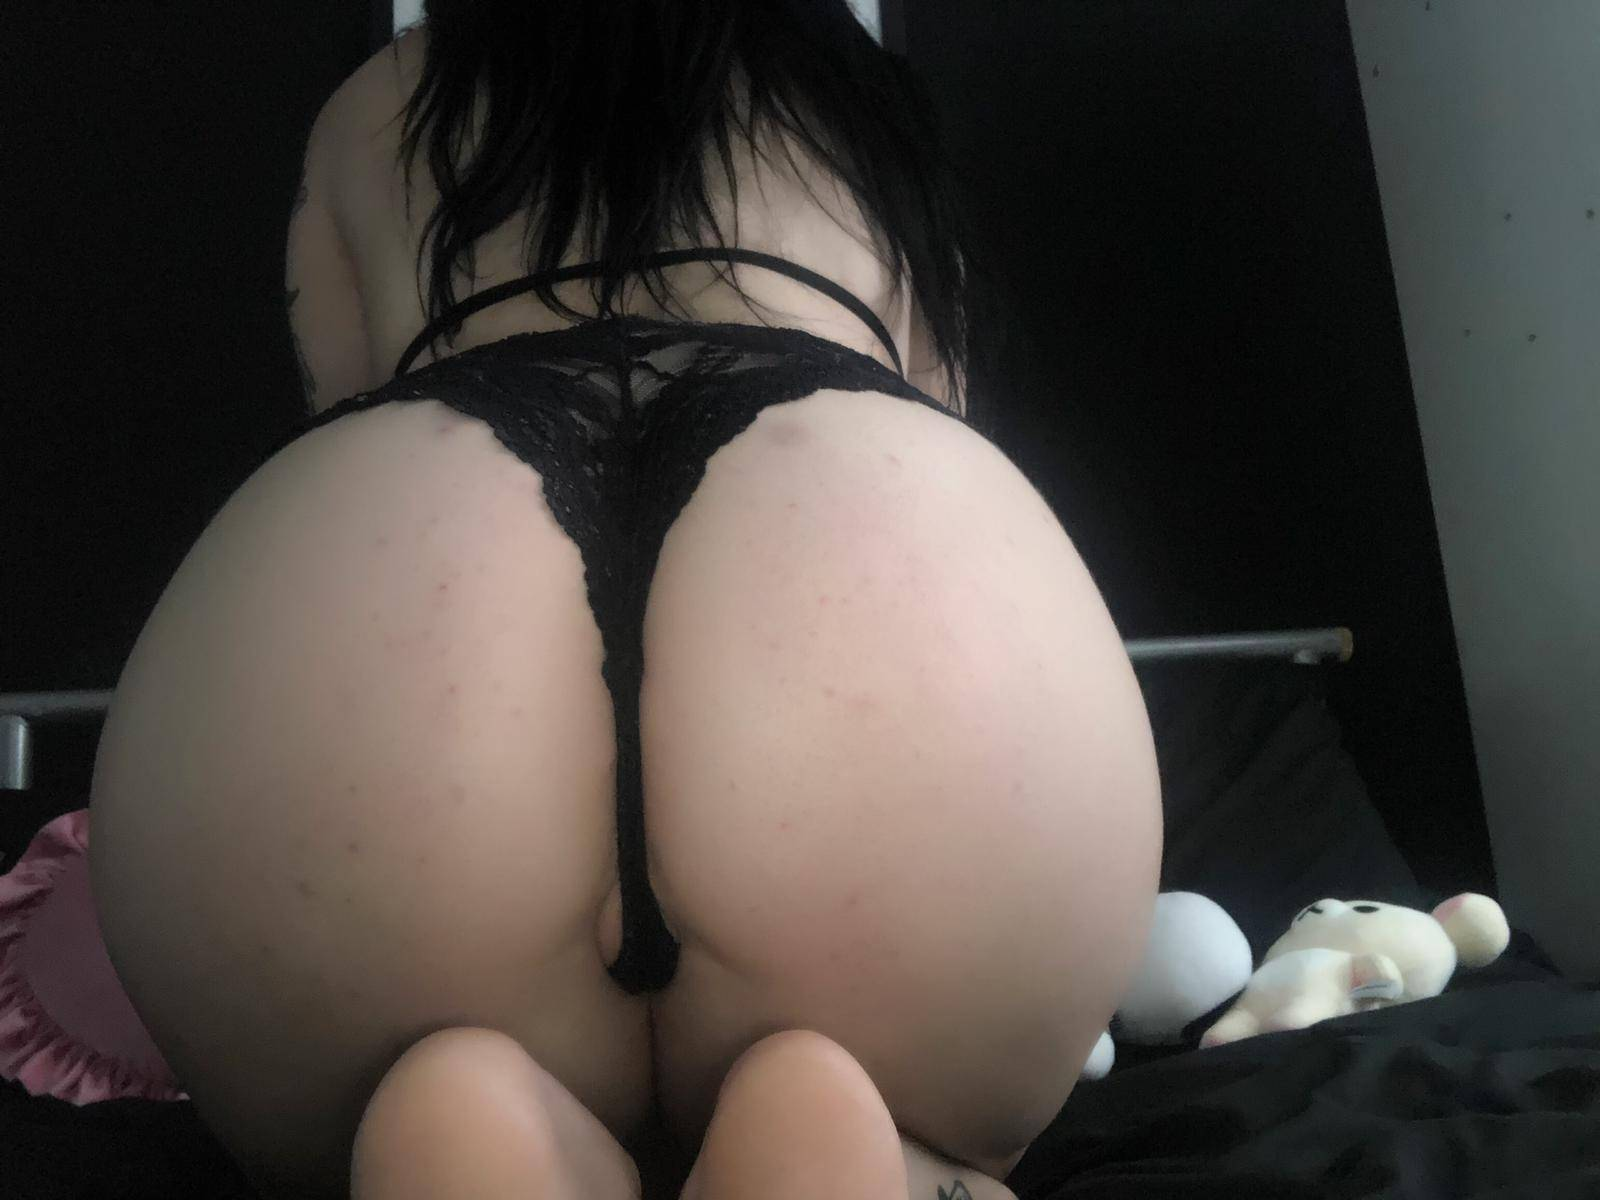 Lydiagh0st Nude Schoolgirl Onlyfans Leaked 0010